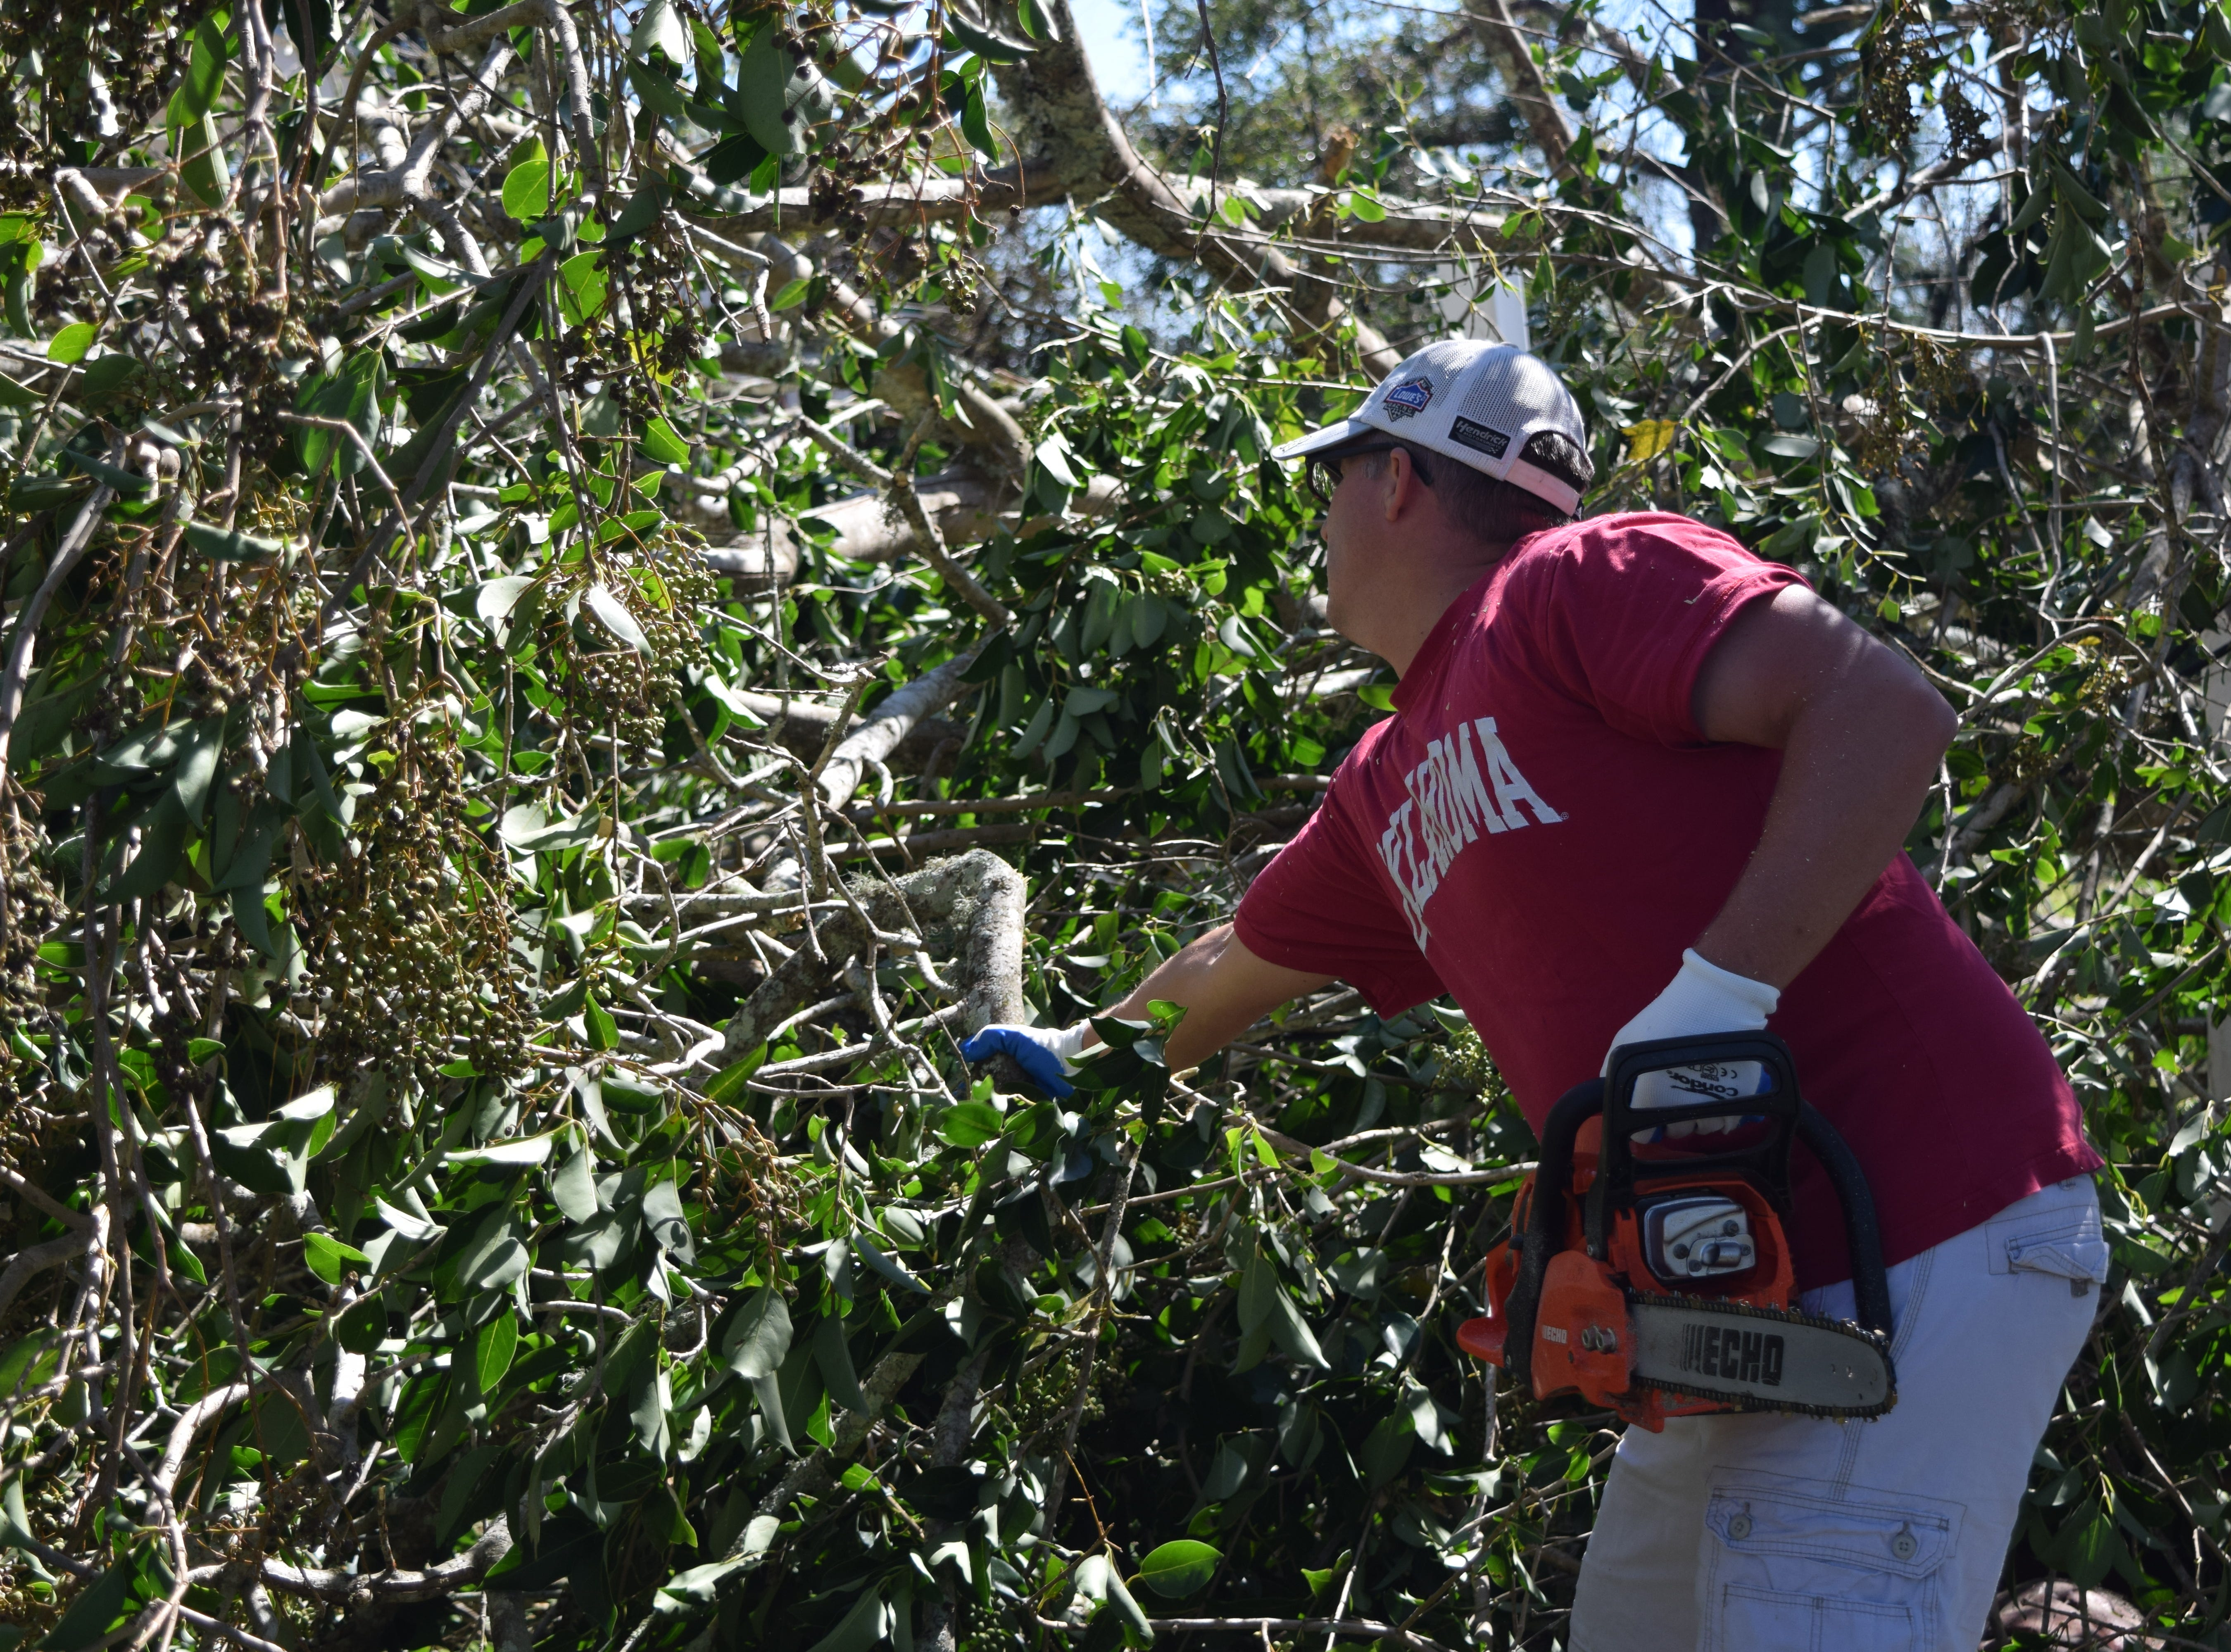 Trey Homan, a volunteer with Mormon Helping Hands, cleans up a house in Quincy after Hurricane Michael.